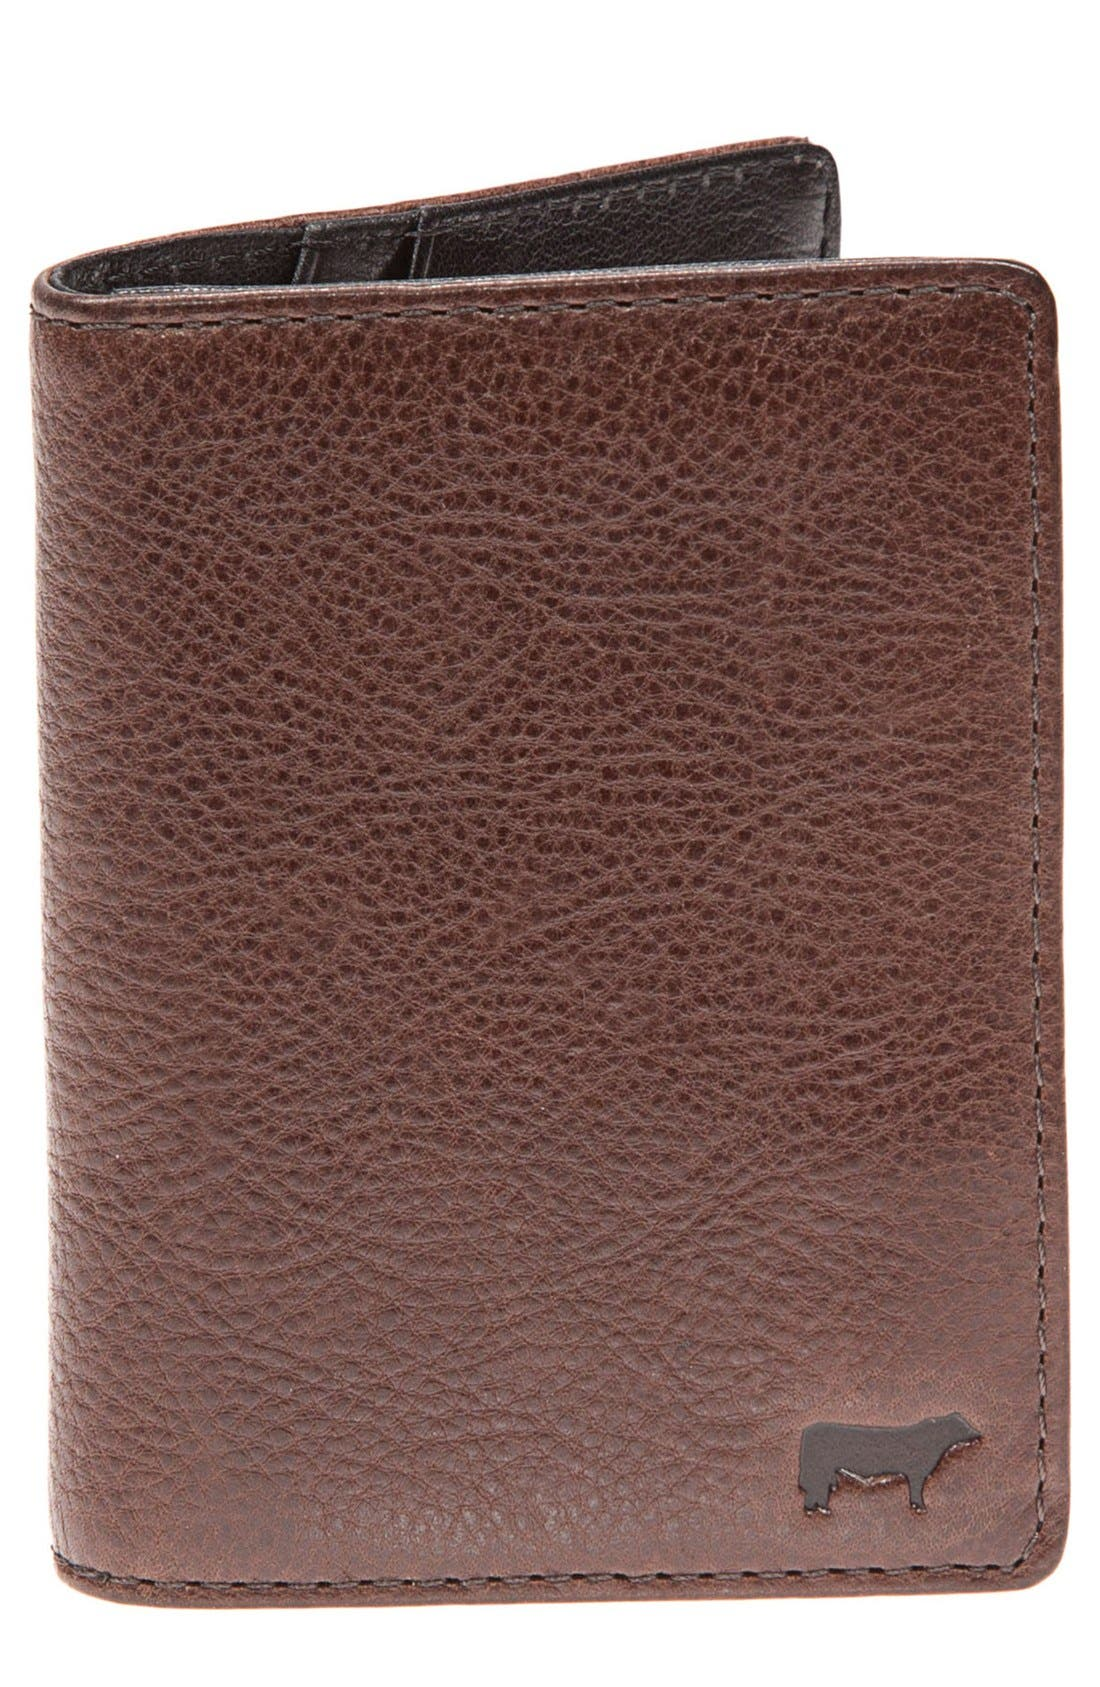 Alternate Image 1 Selected - Will Leather Goods 'Clyde' Front Pocket Wallet